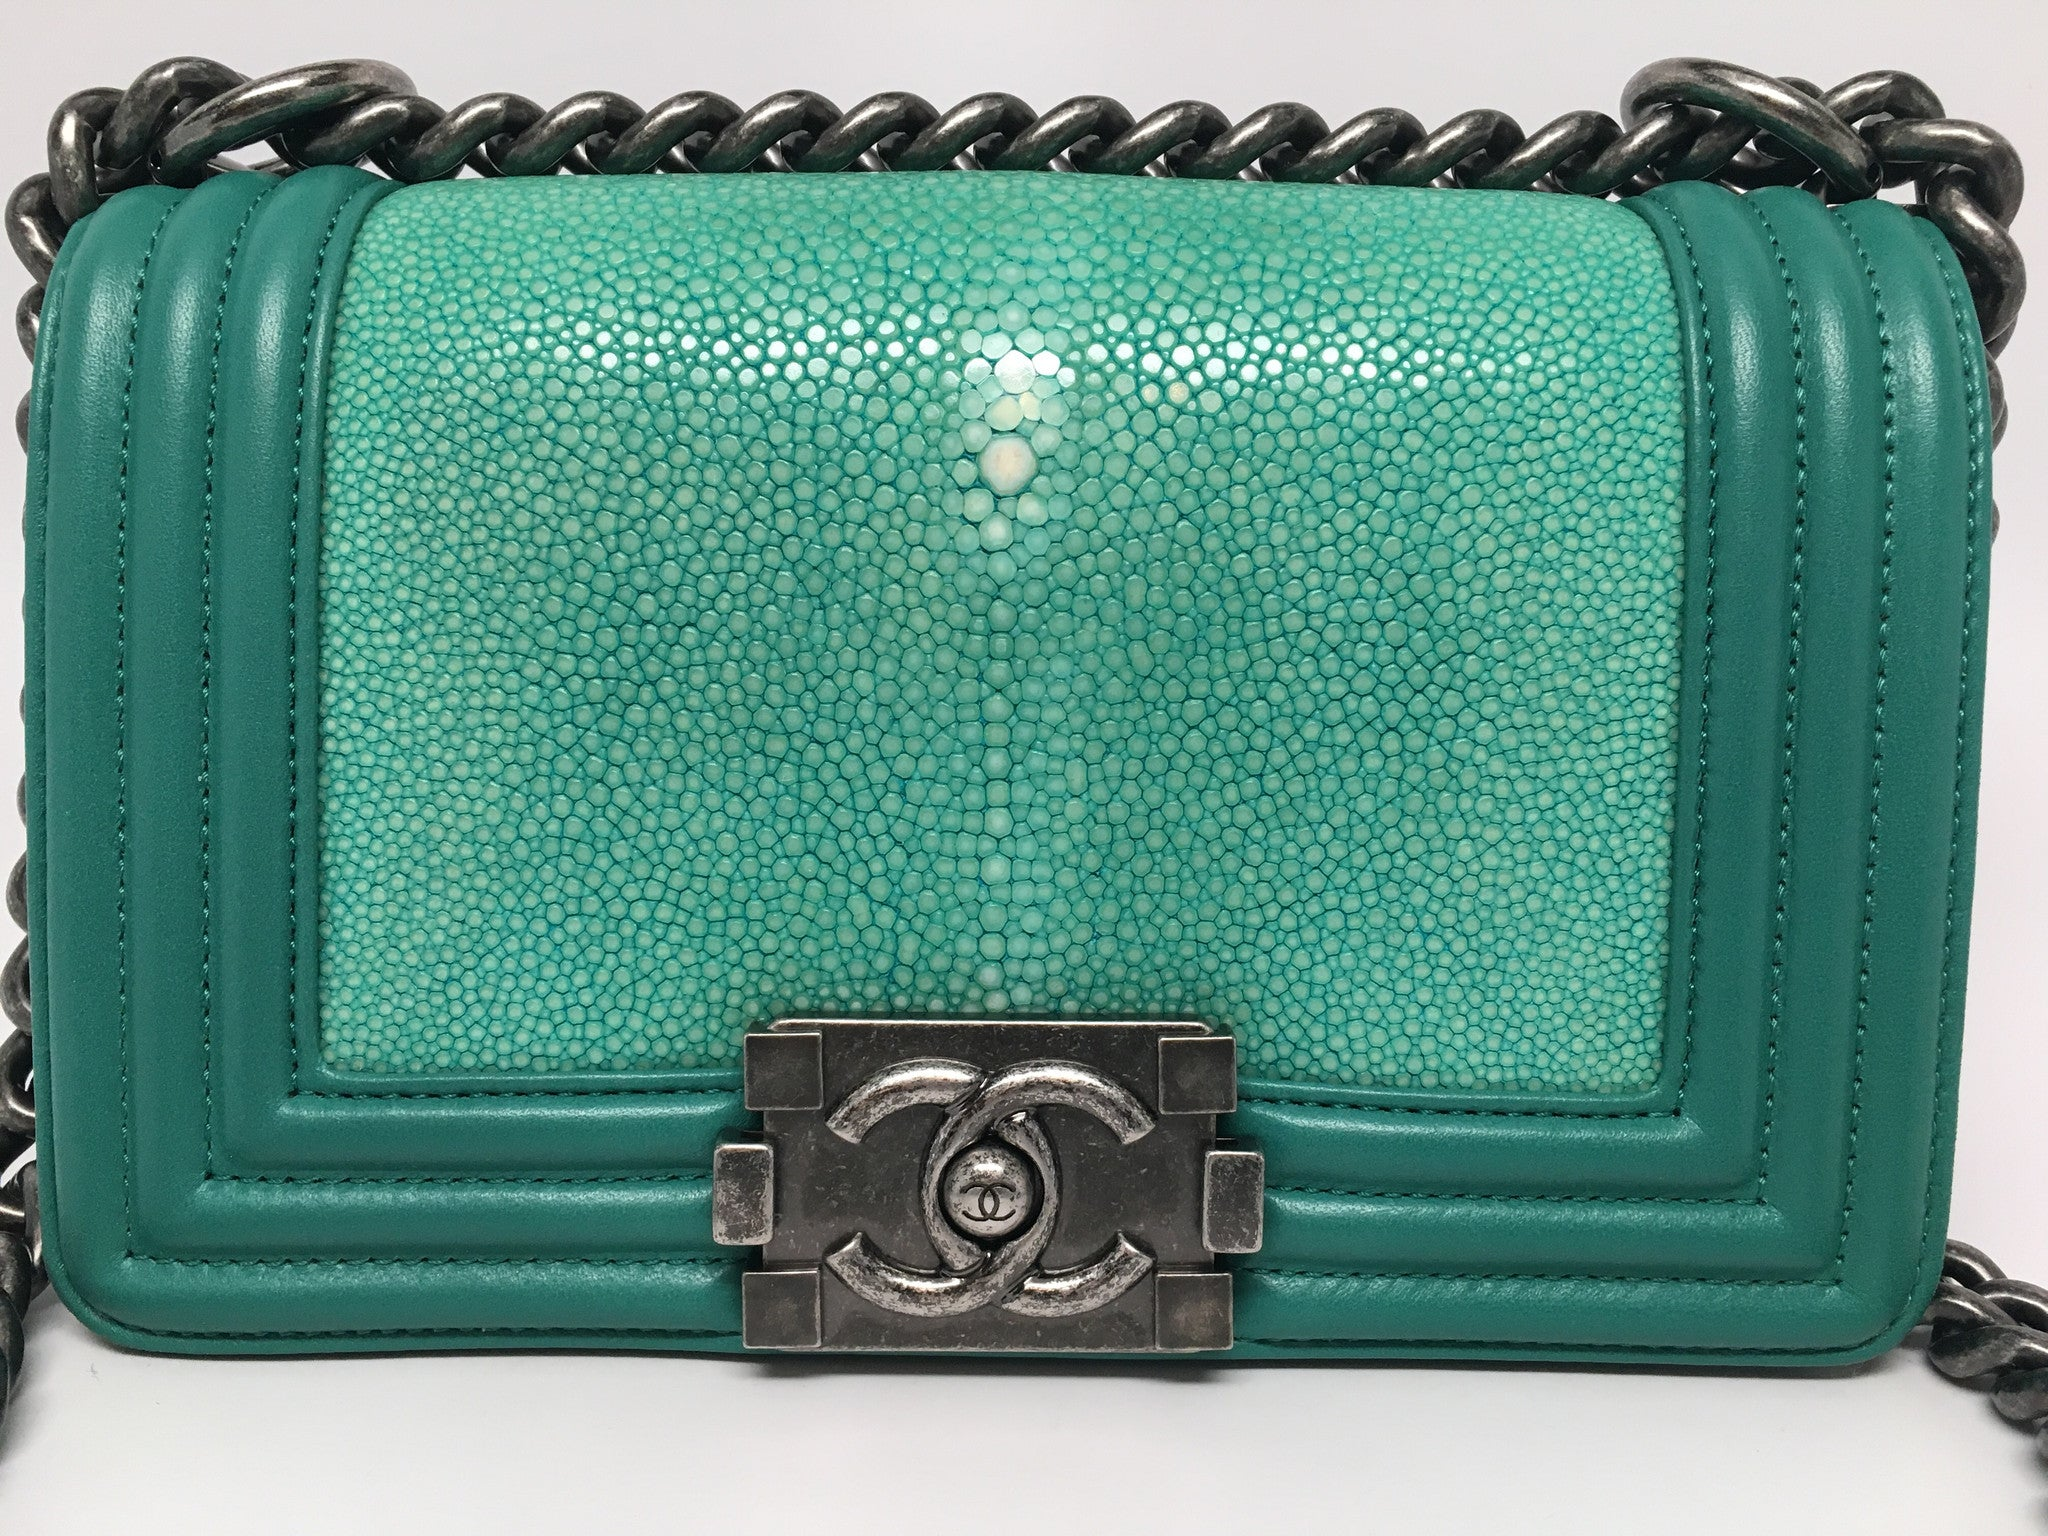 e4de76748c17 Small Boy Chanel Flap Bag Price | Stanford Center for Opportunity ...